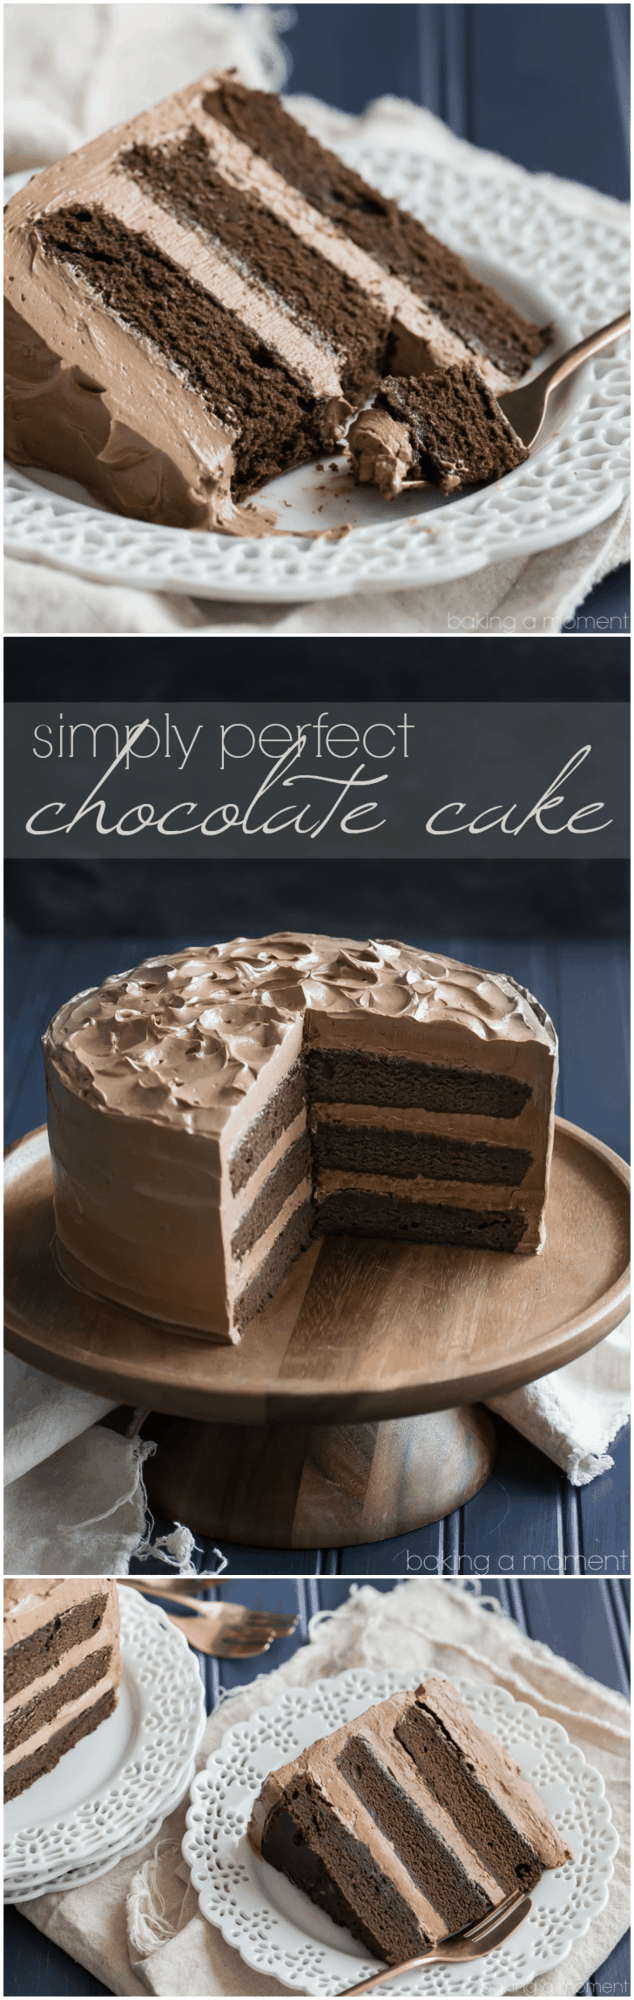 Best tasting chocolate cake recipe